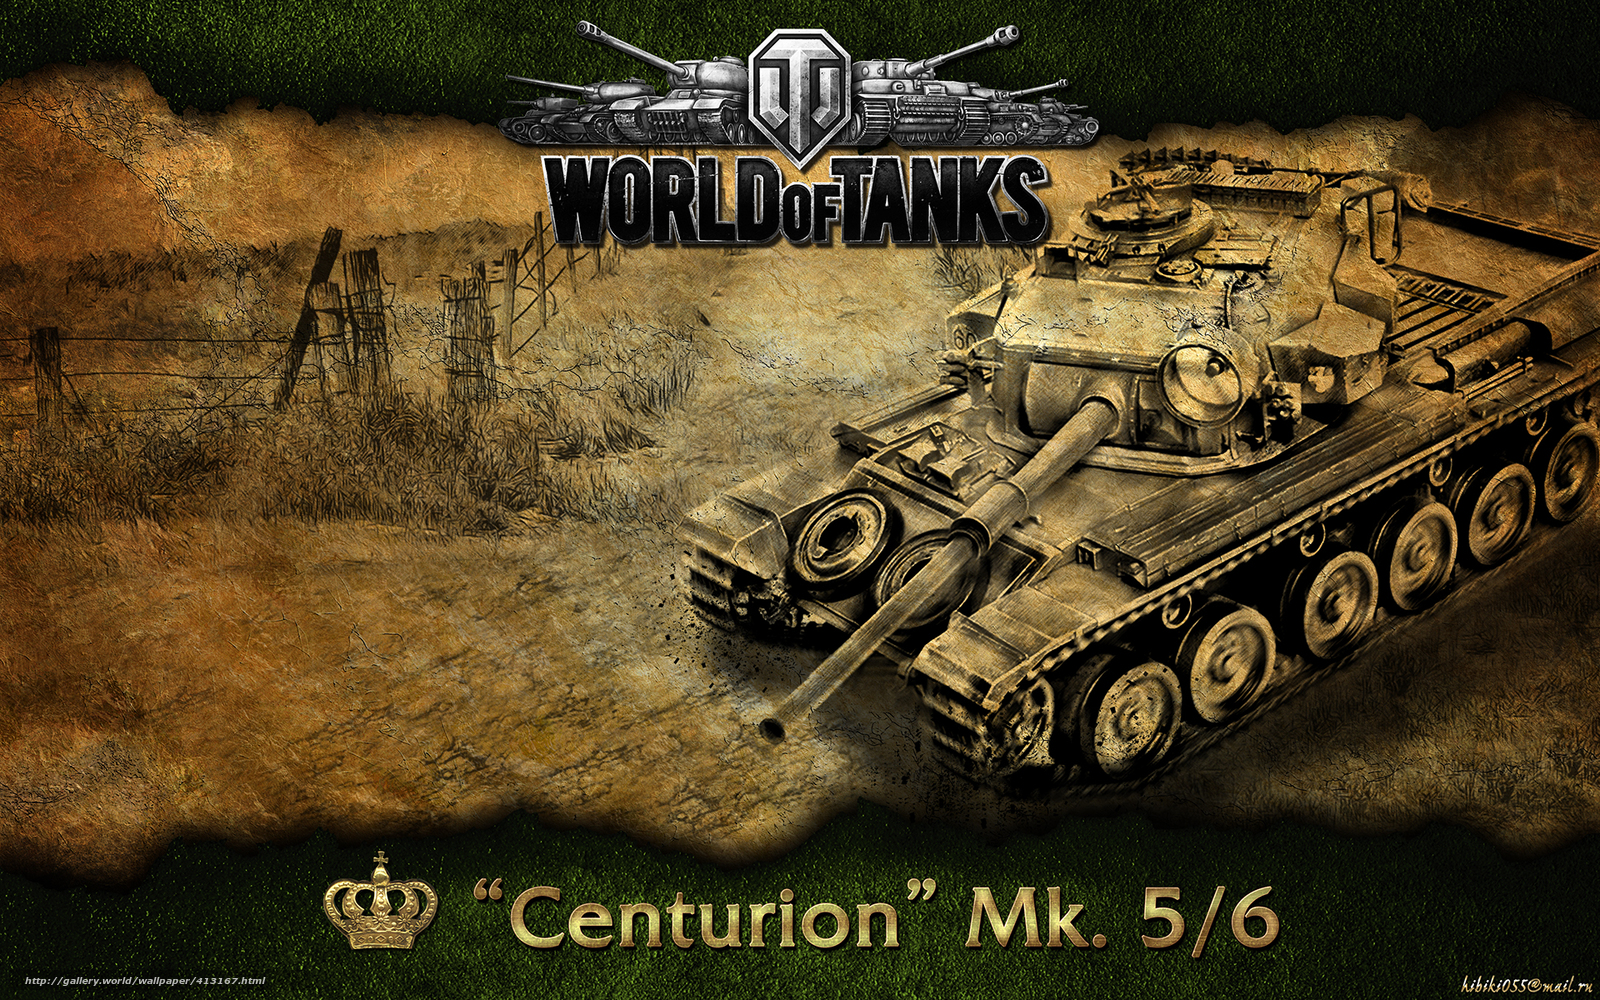 413167 world of tanks igra tank 1920x1200 www gdefon ru